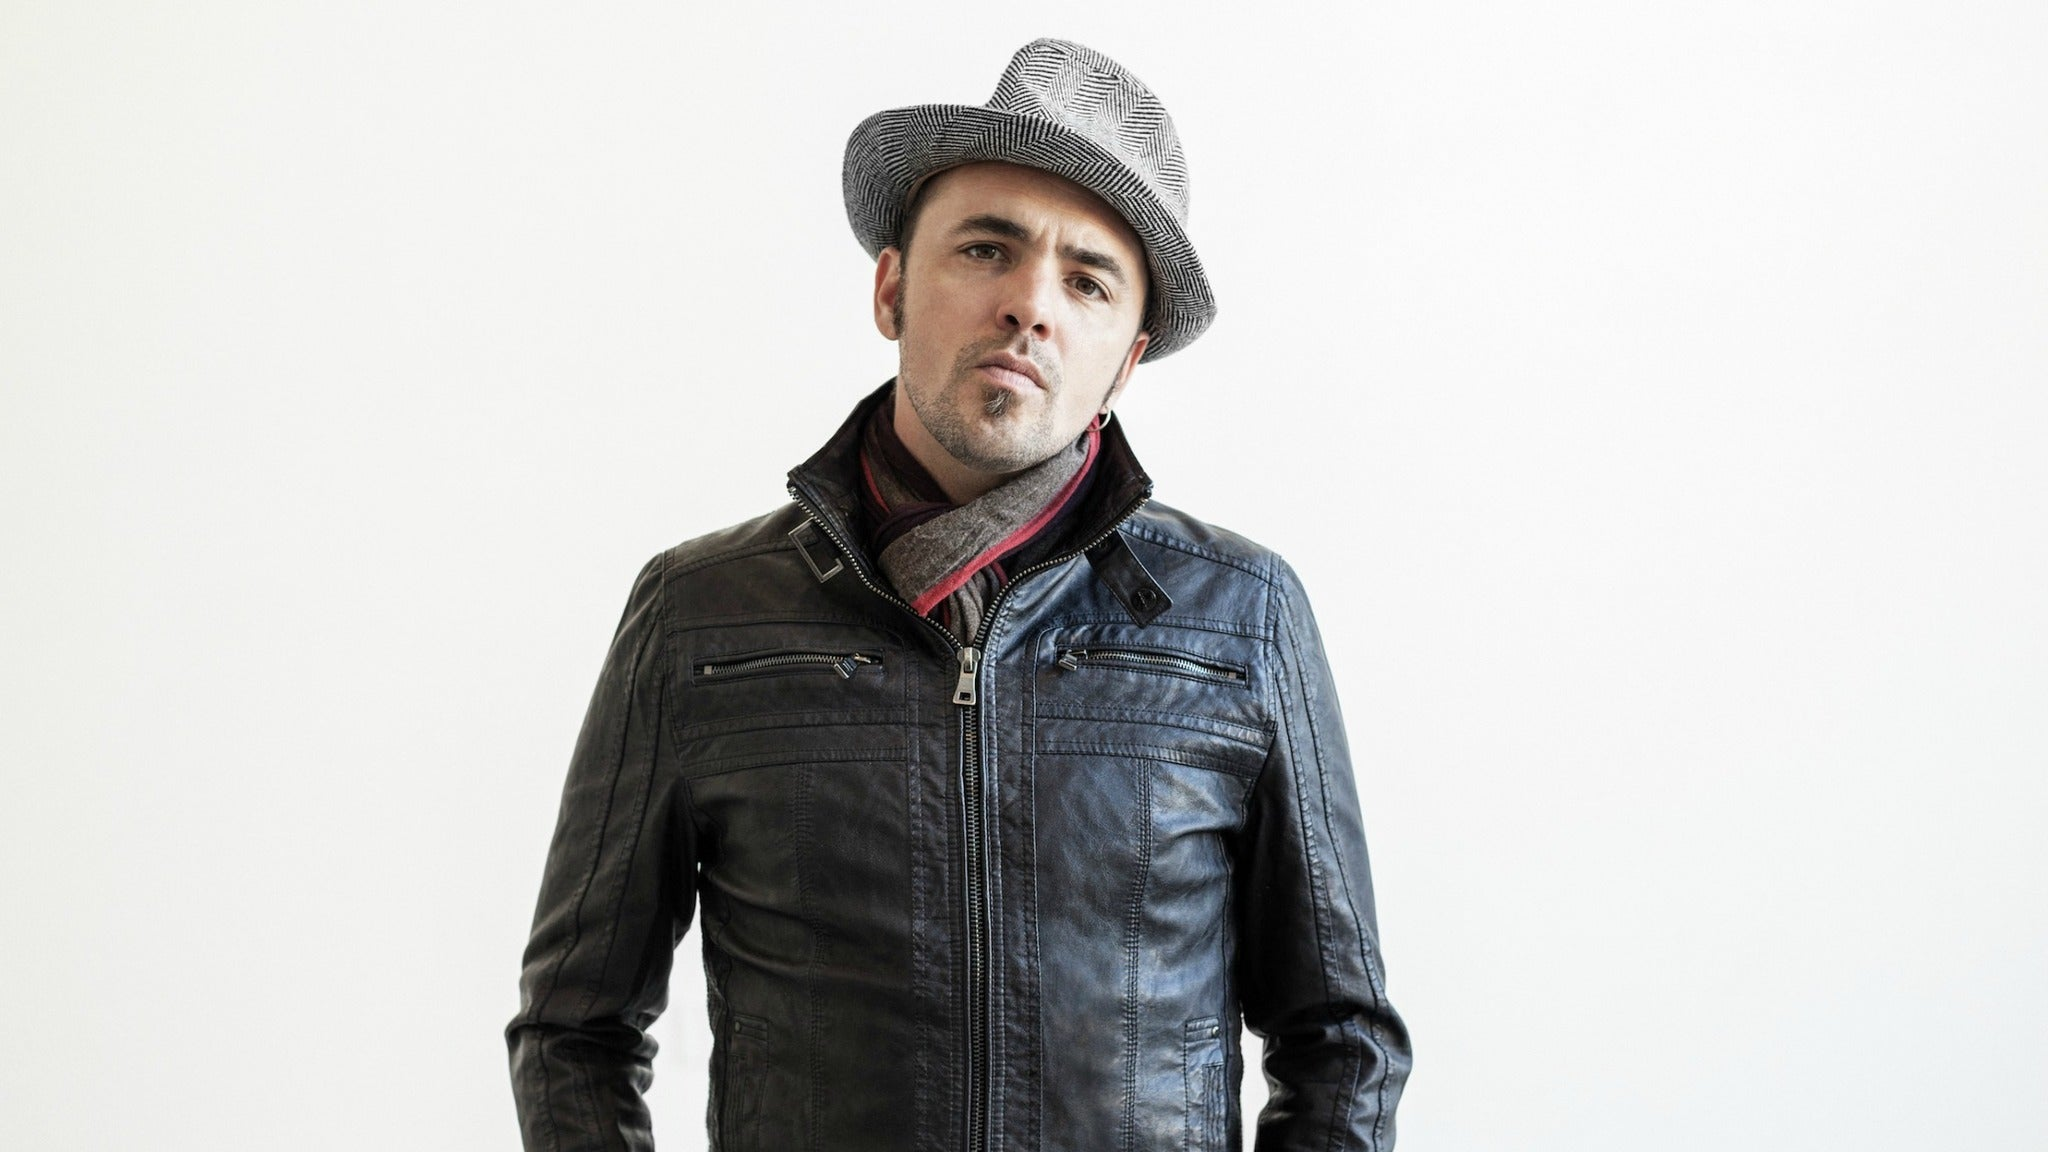 Hawksley Workman: Almost a Full Moon - The Merry Christmas Show presale password for show tickets in Toronto, ON (The Danforth Music Hall)